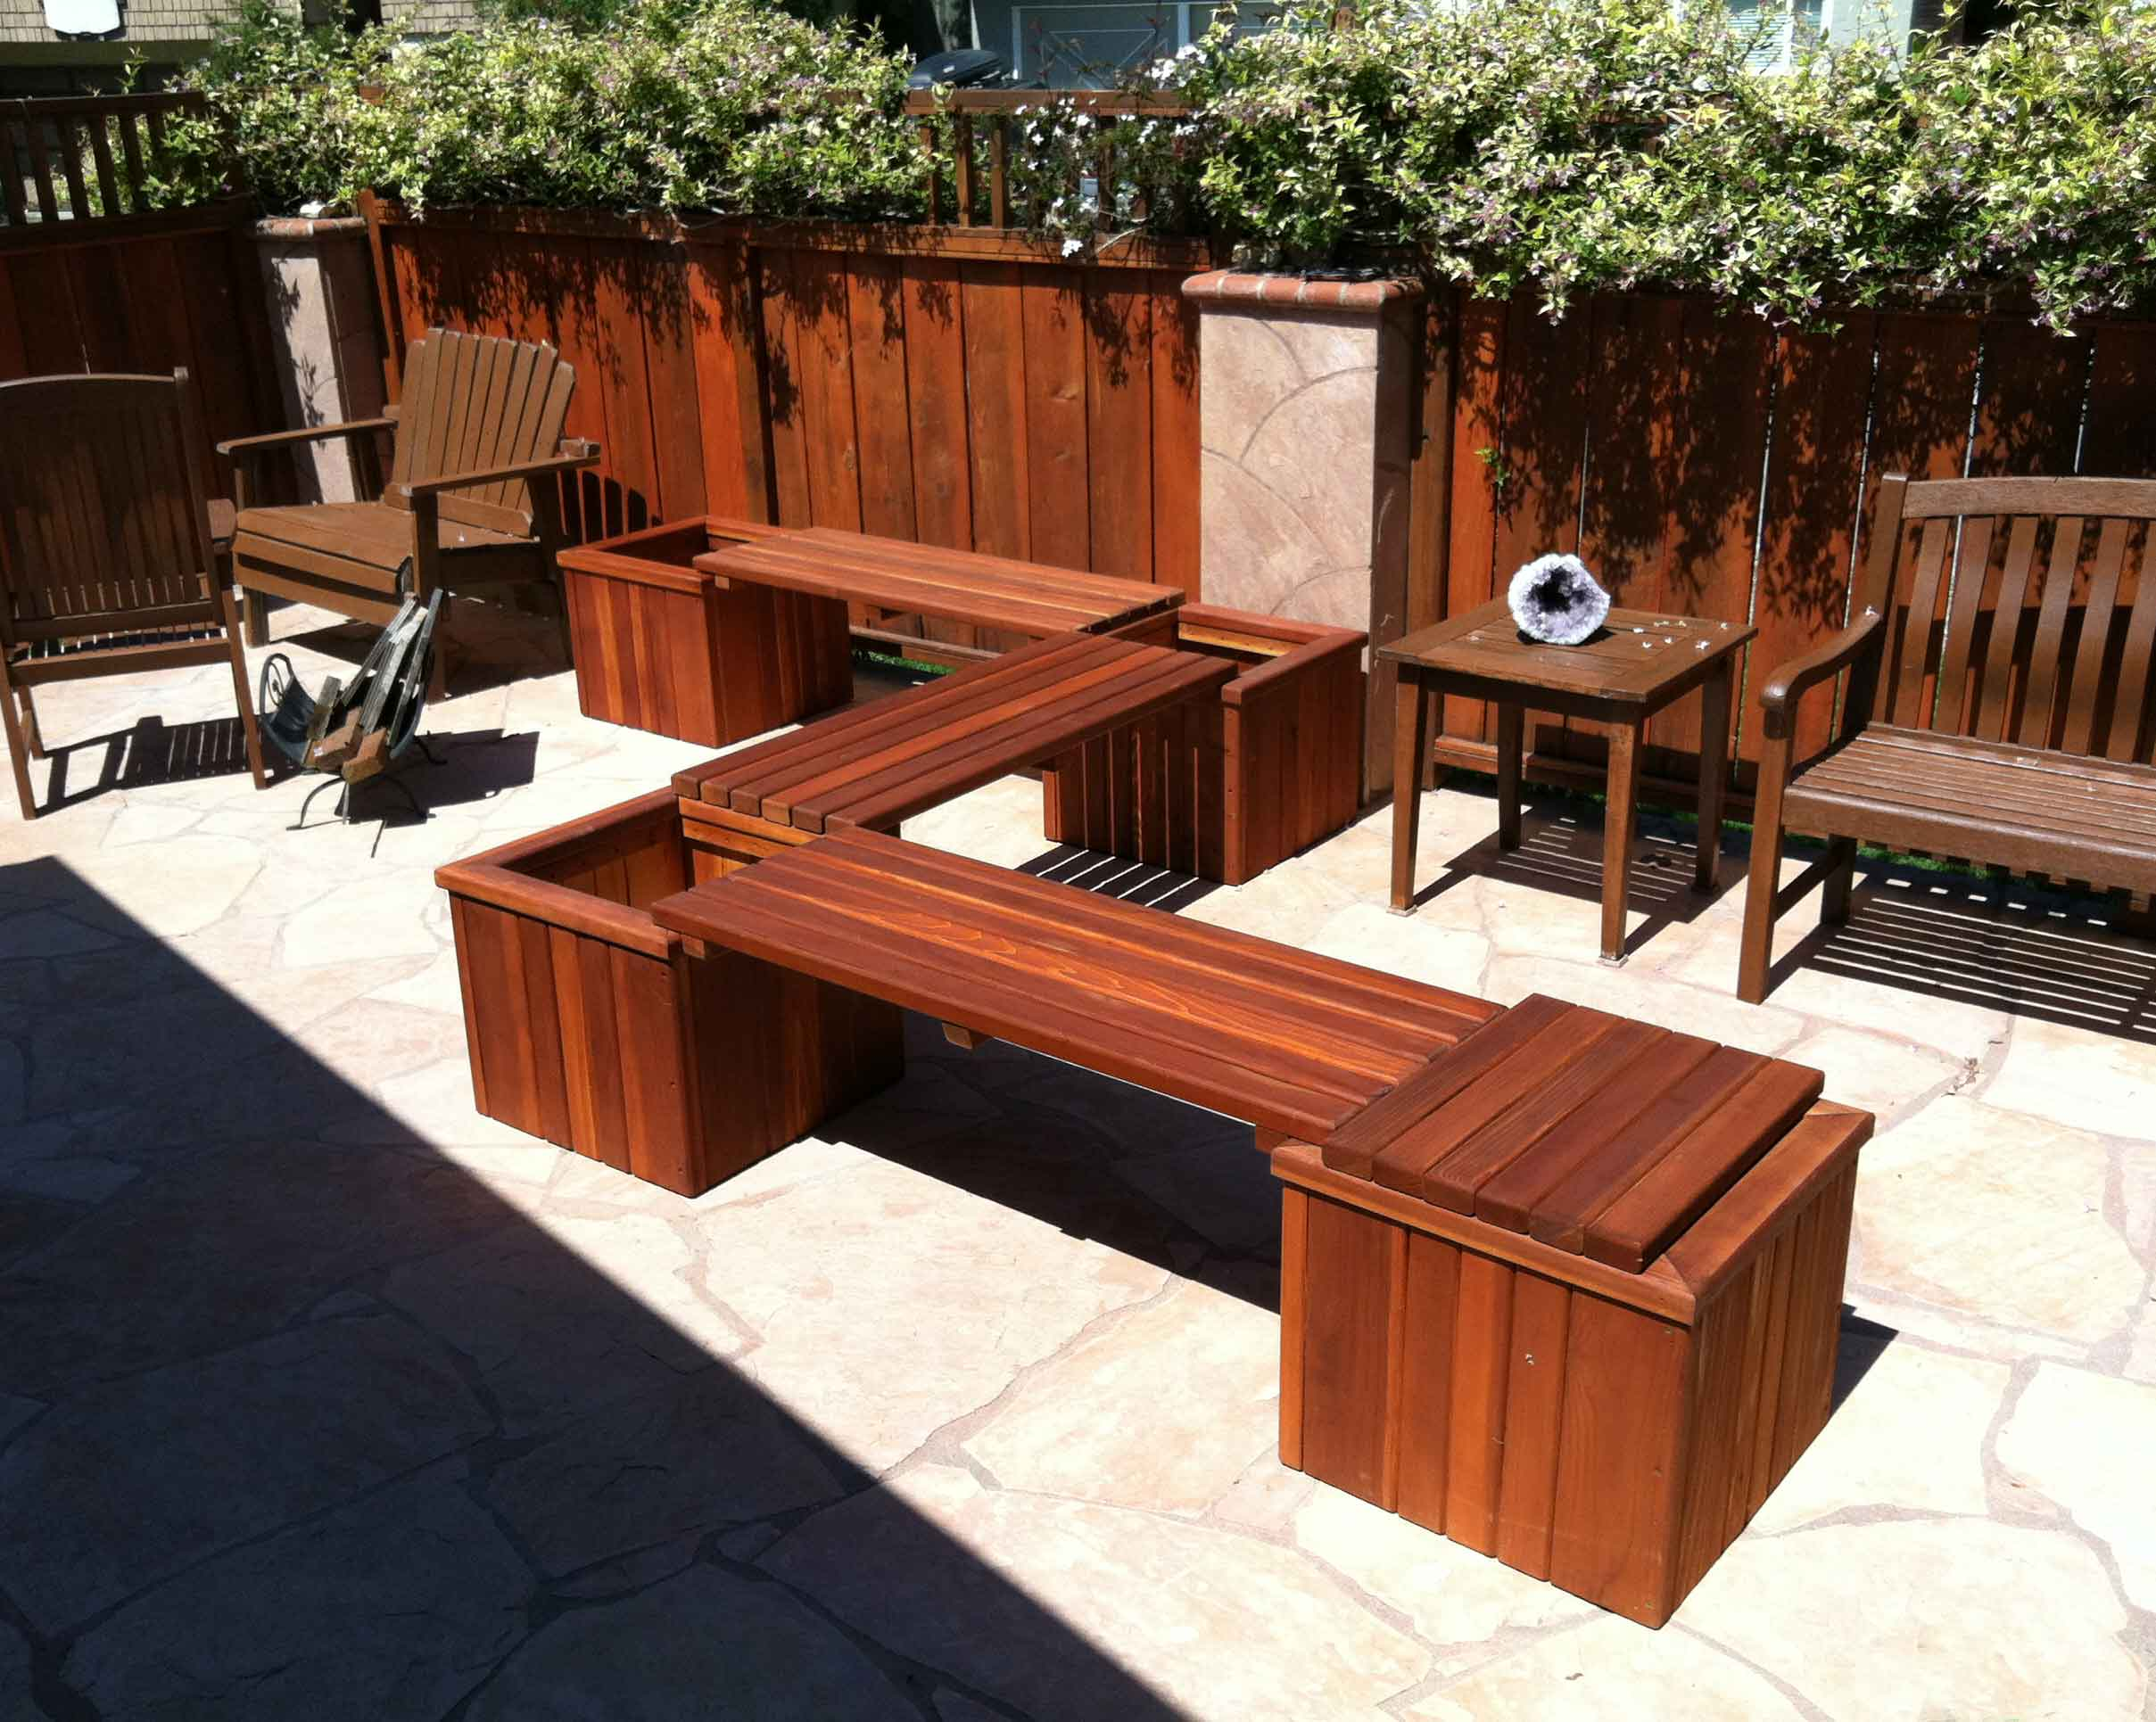 California Hot Spas Redwood Planters